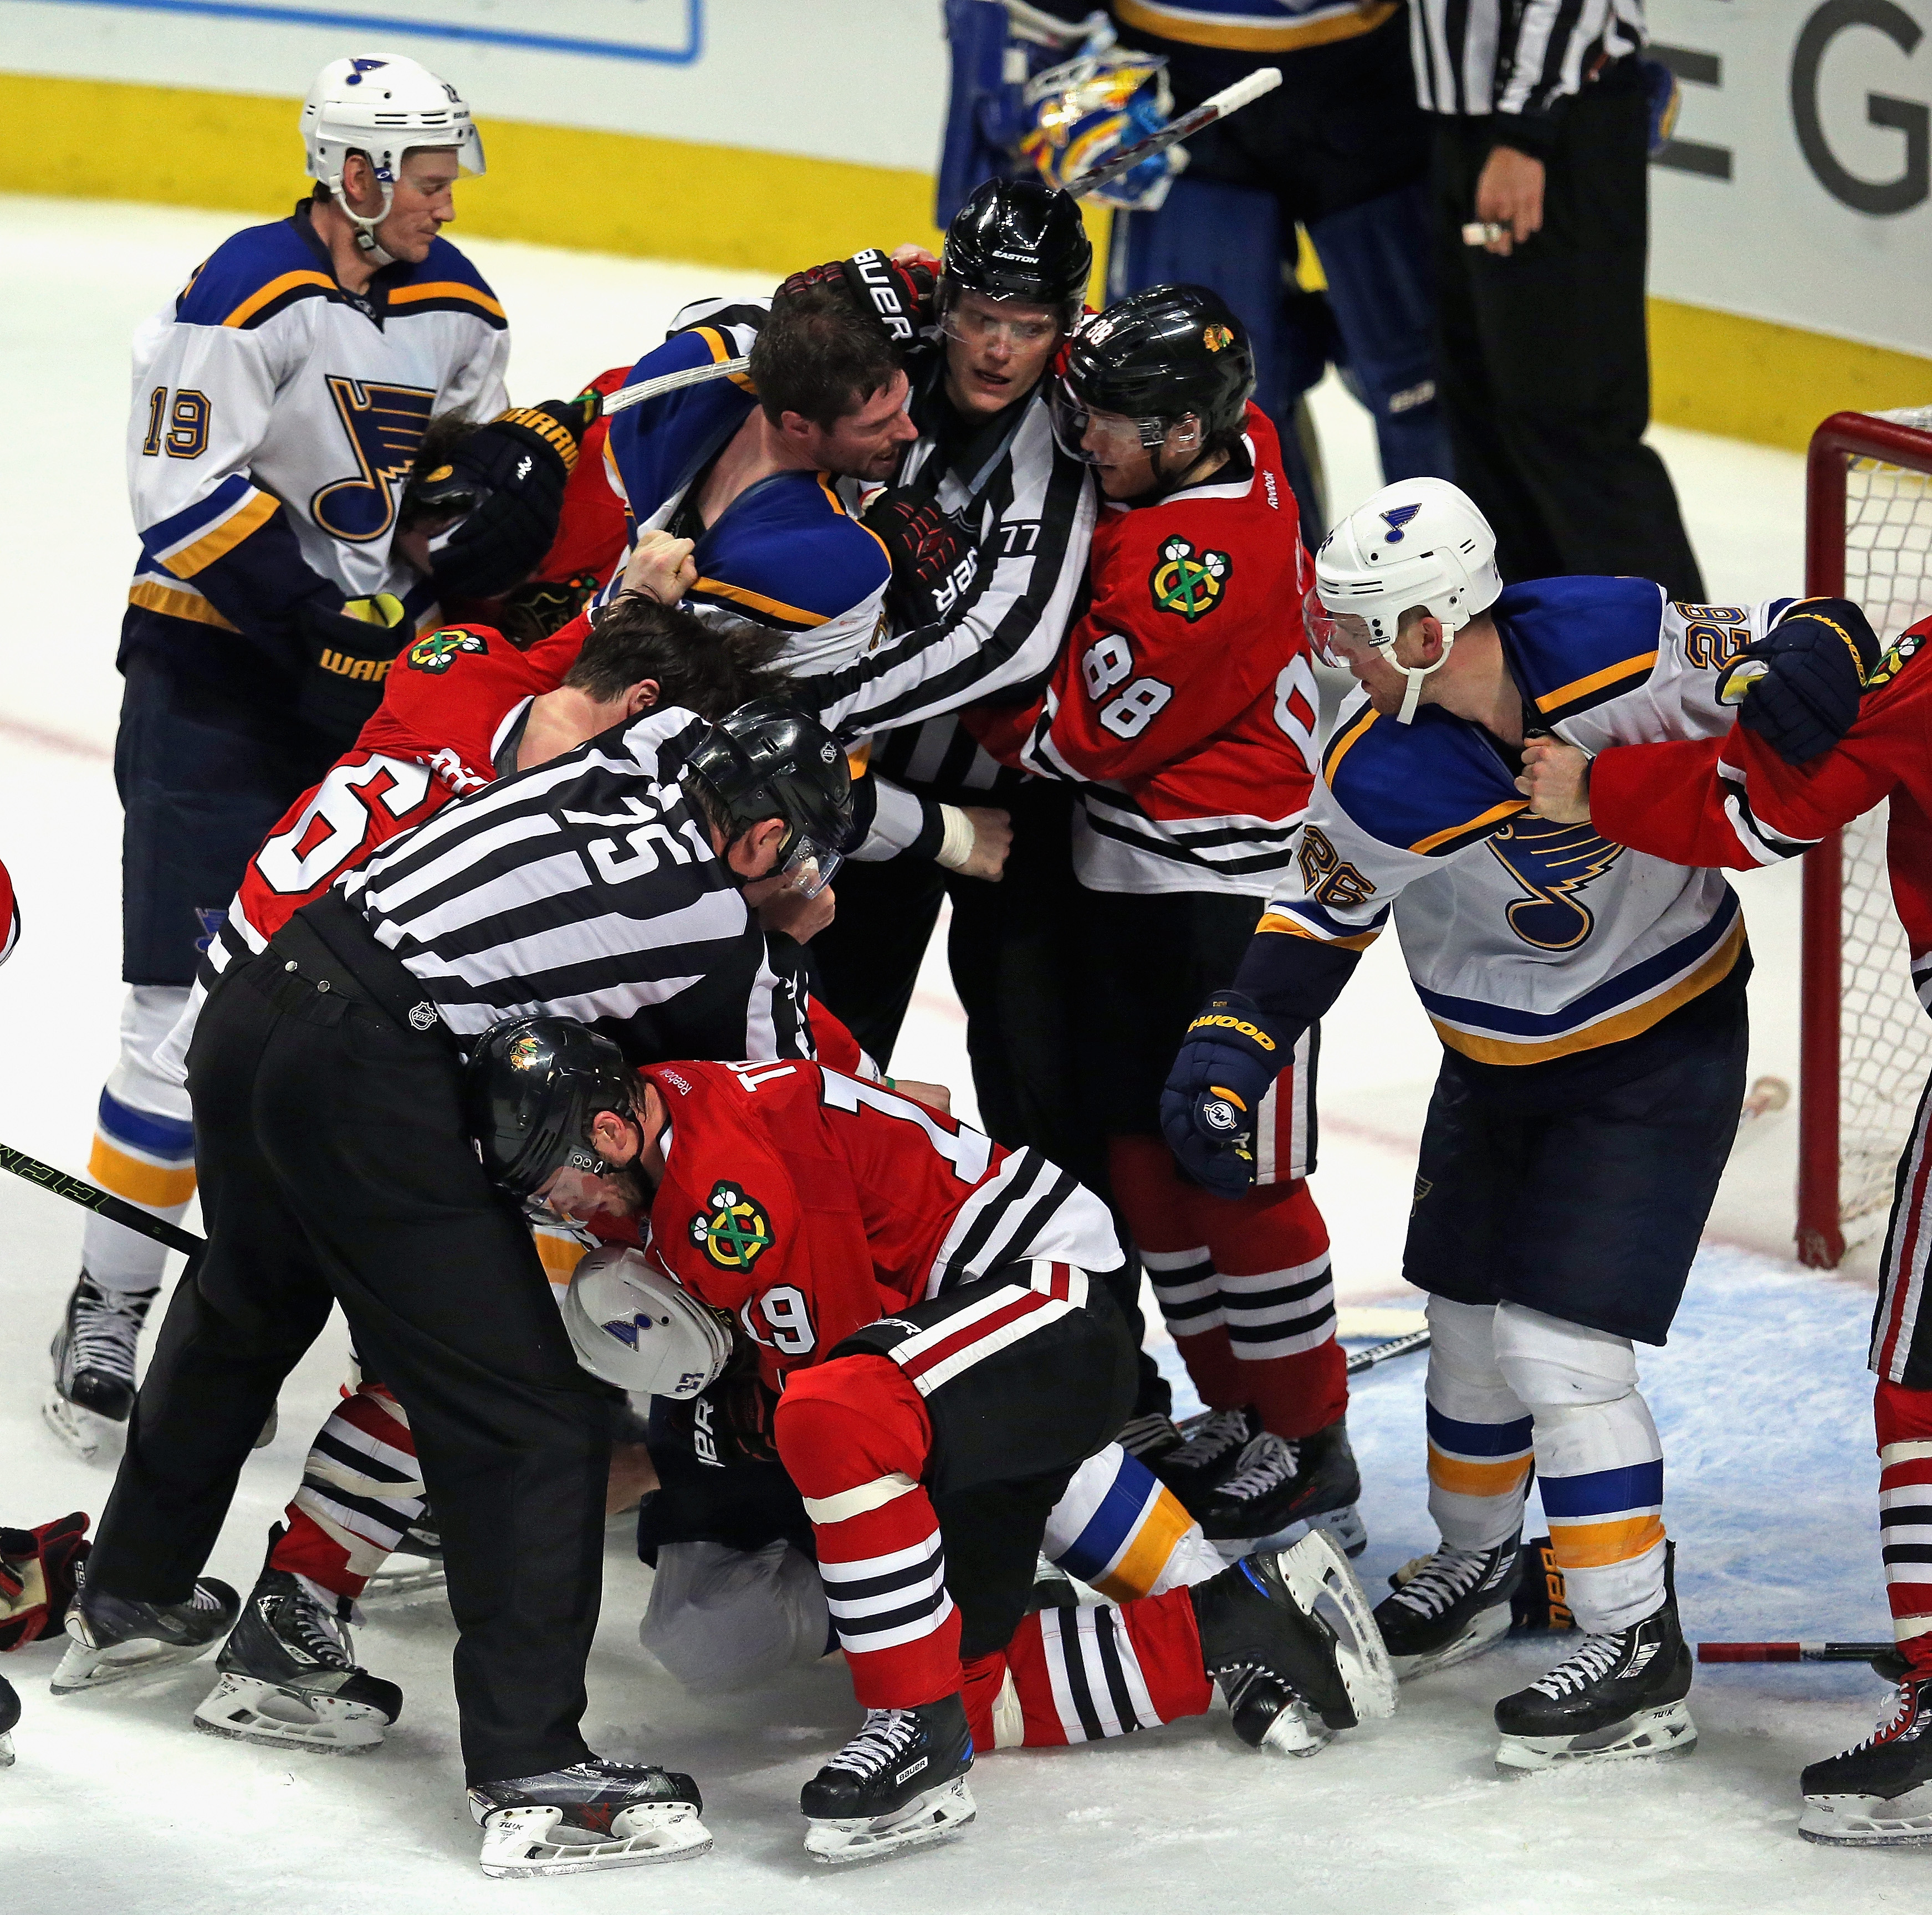 Pictured: Noted goons Patrick Kane and Jonathan Toews.